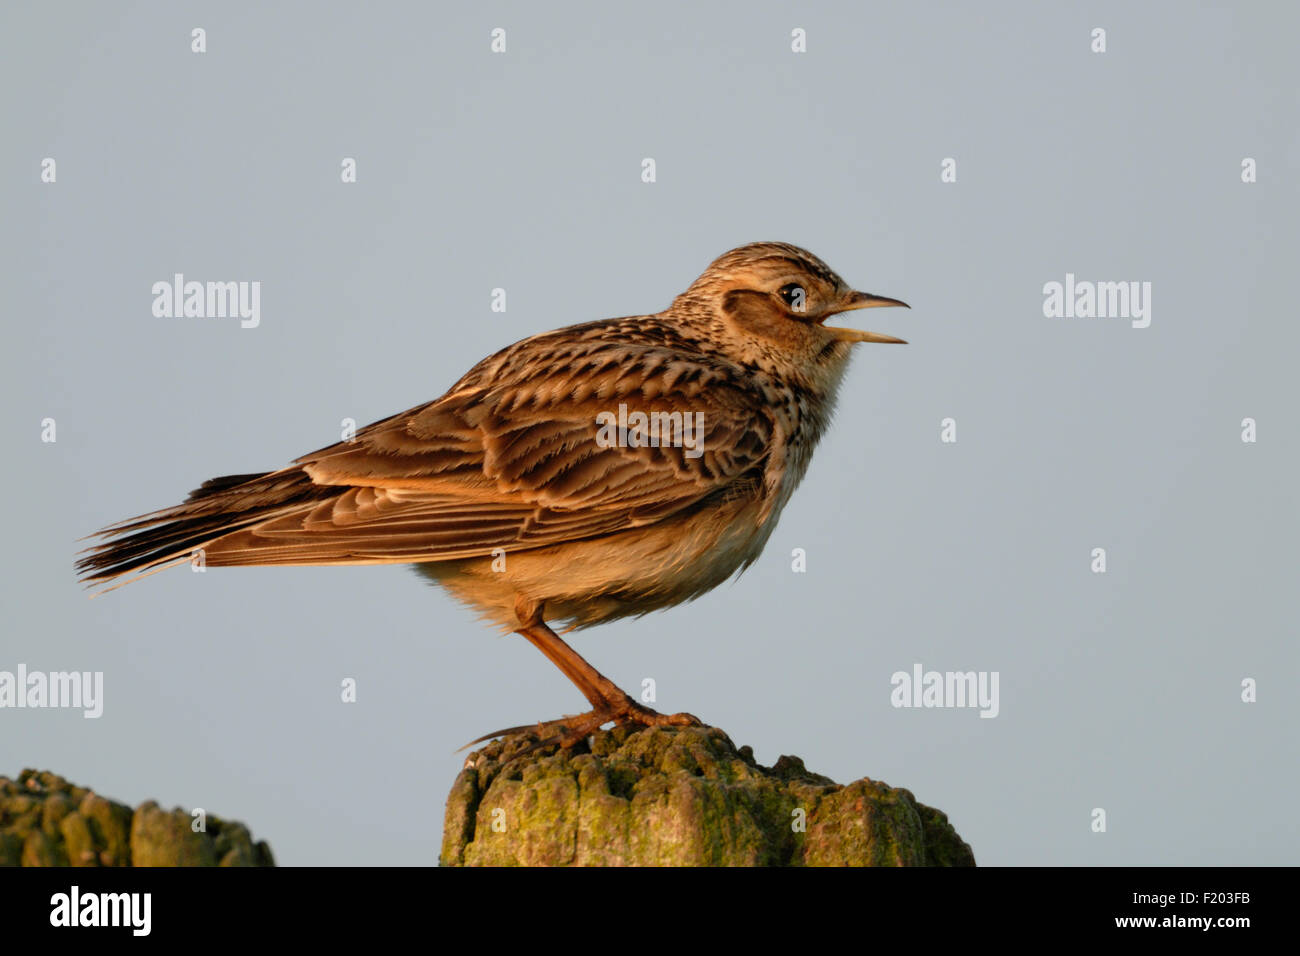 Alauda arvensis / Skylark / Feldlerche singing in first morning light. - Stock Image